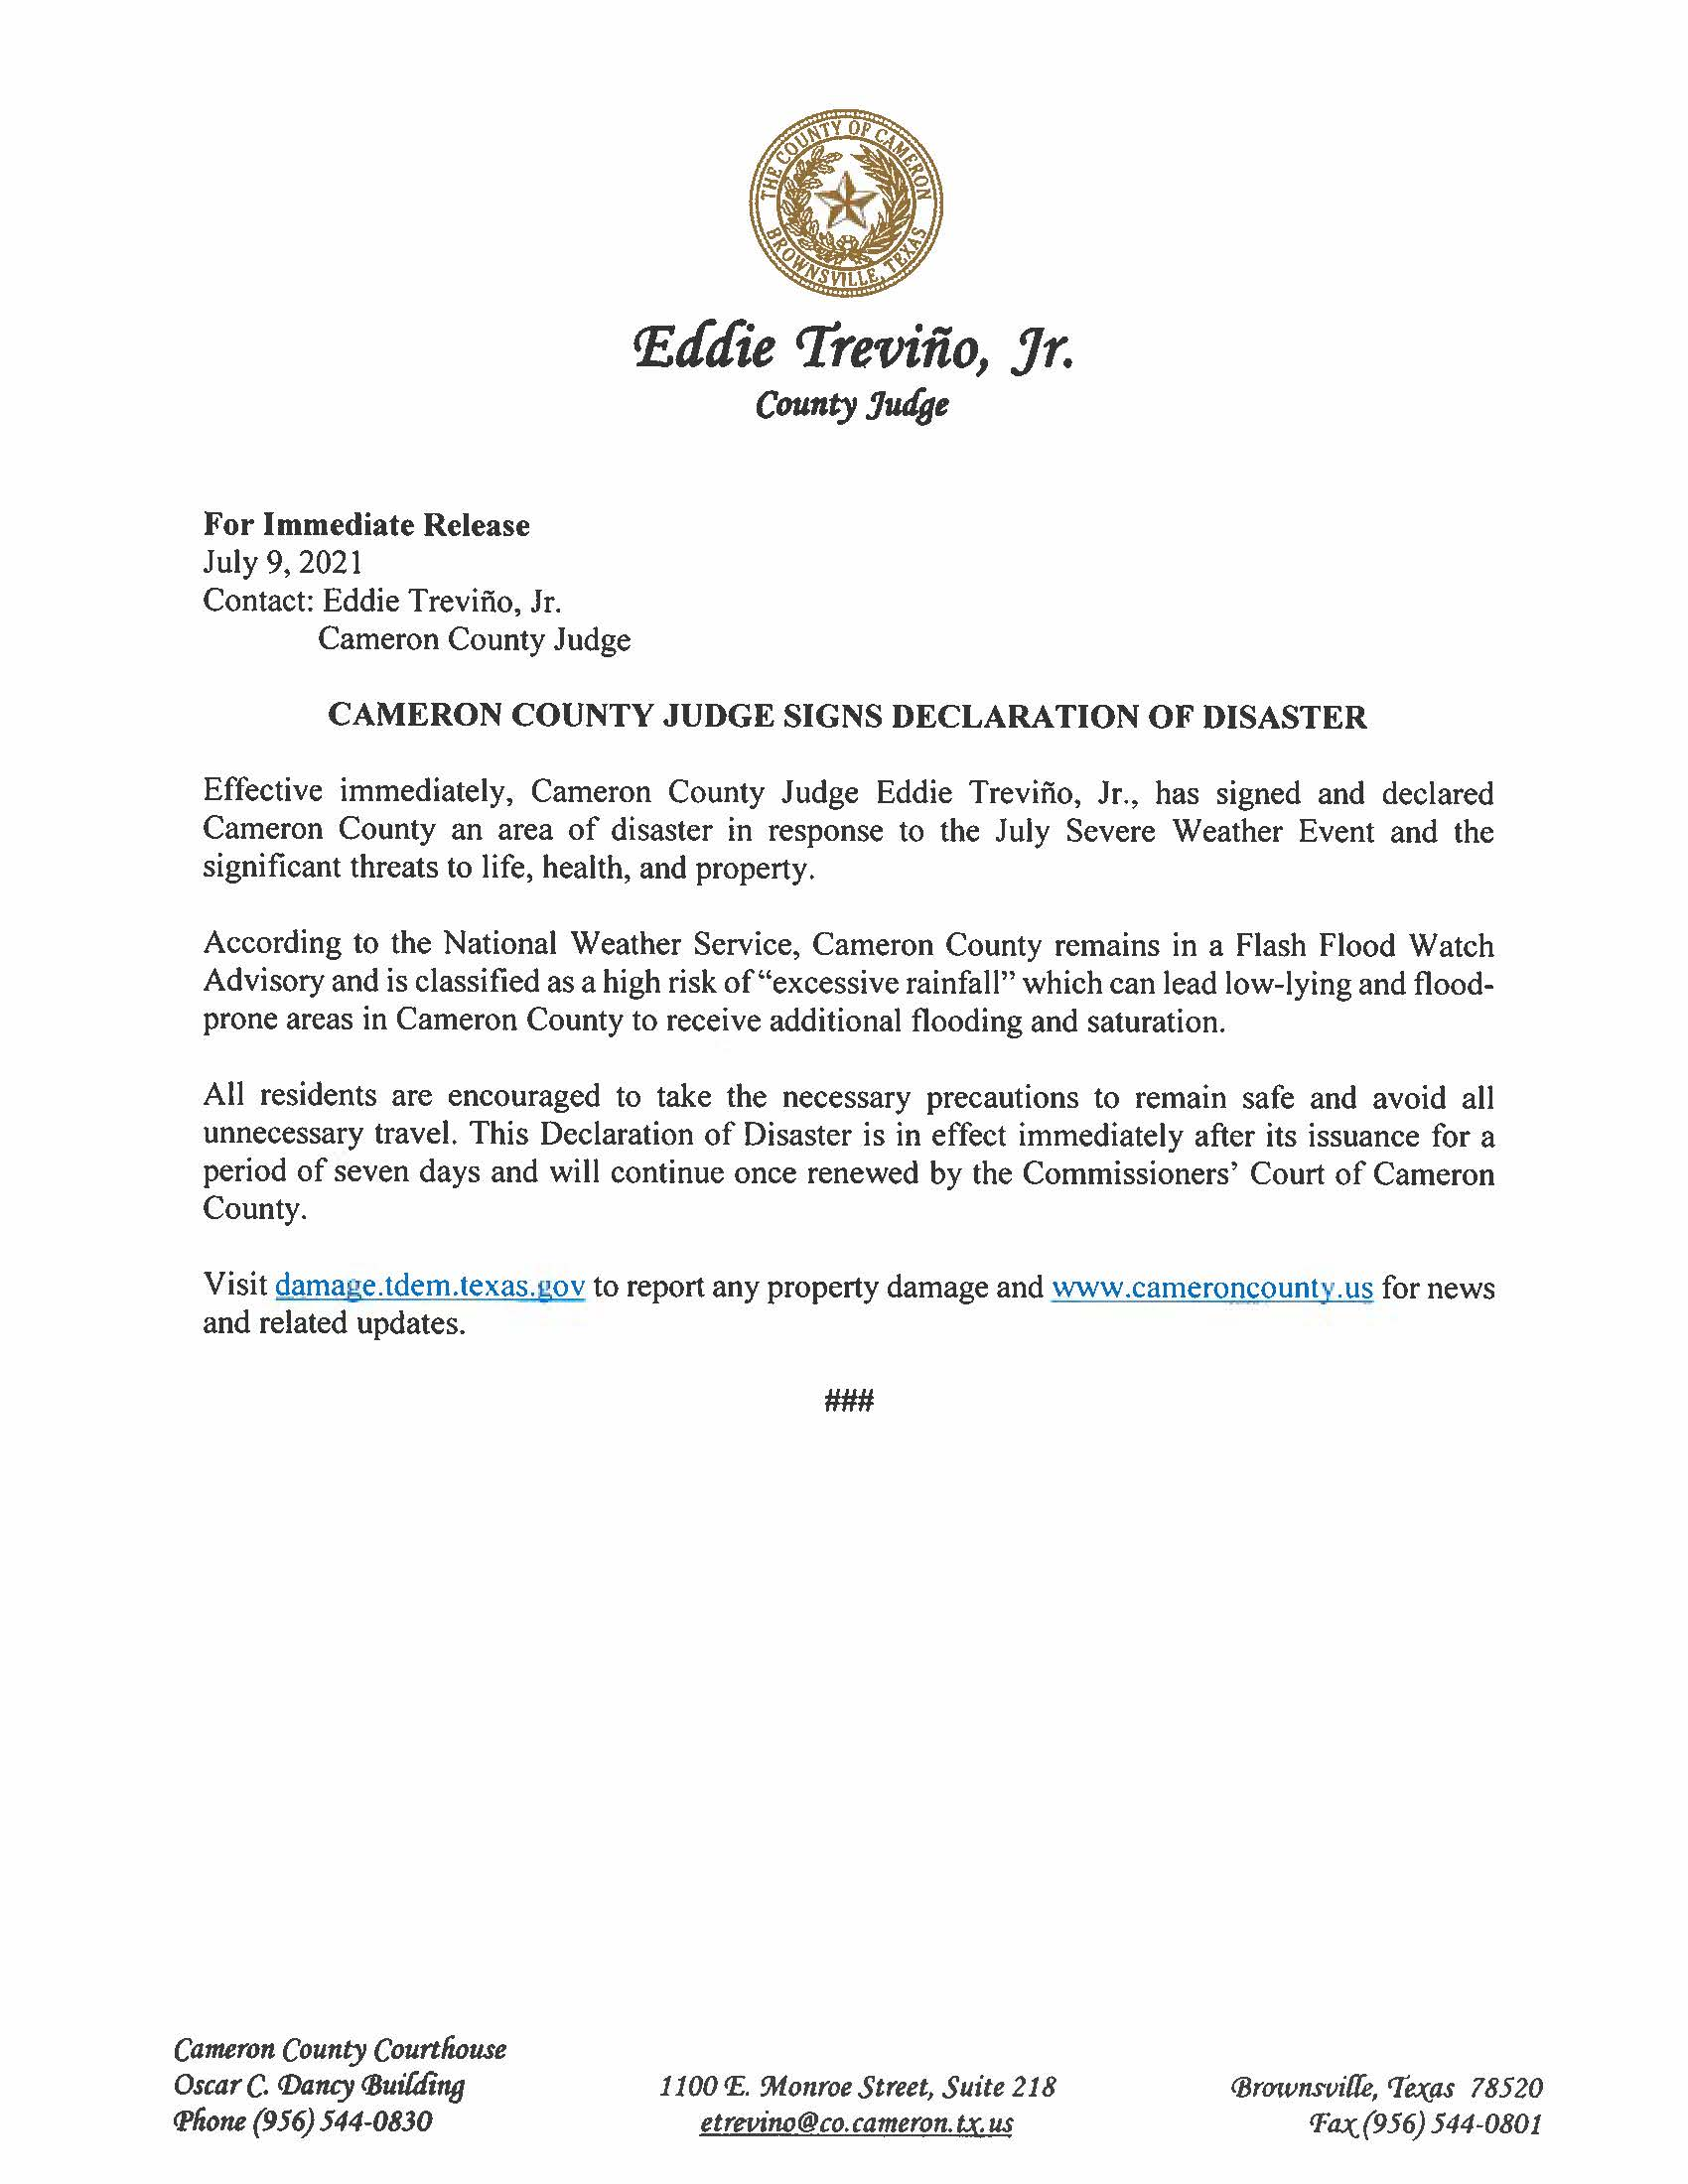 7.9.21 Cameron County Judge Signs Declaration Of Disaster July Severe Weather Event